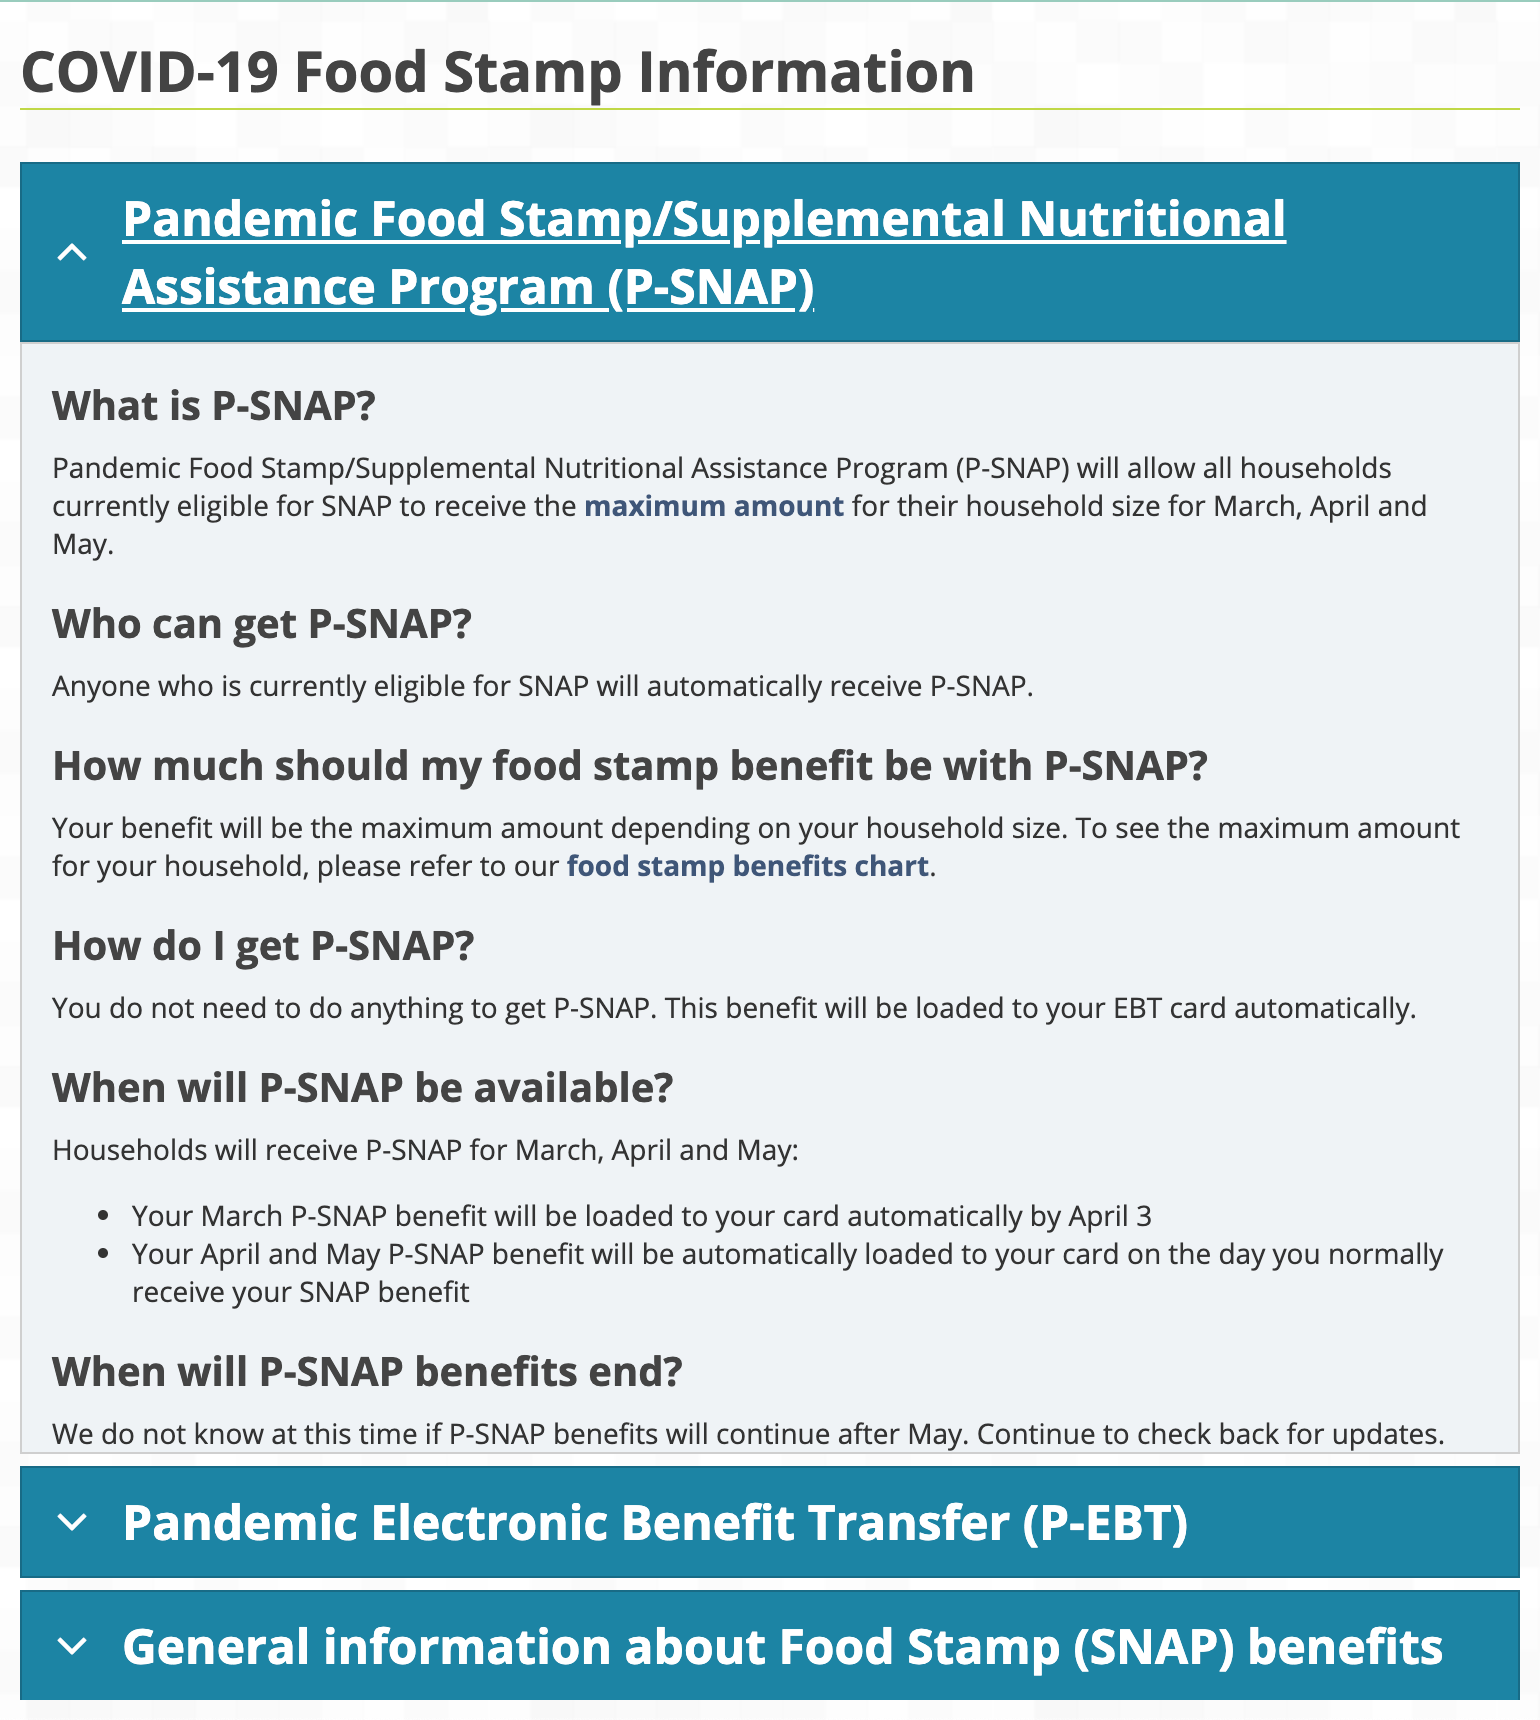 P-SNAP (Pandemic Food Stamps) benefits are available to provide maximum food assistance benefits per household size through May